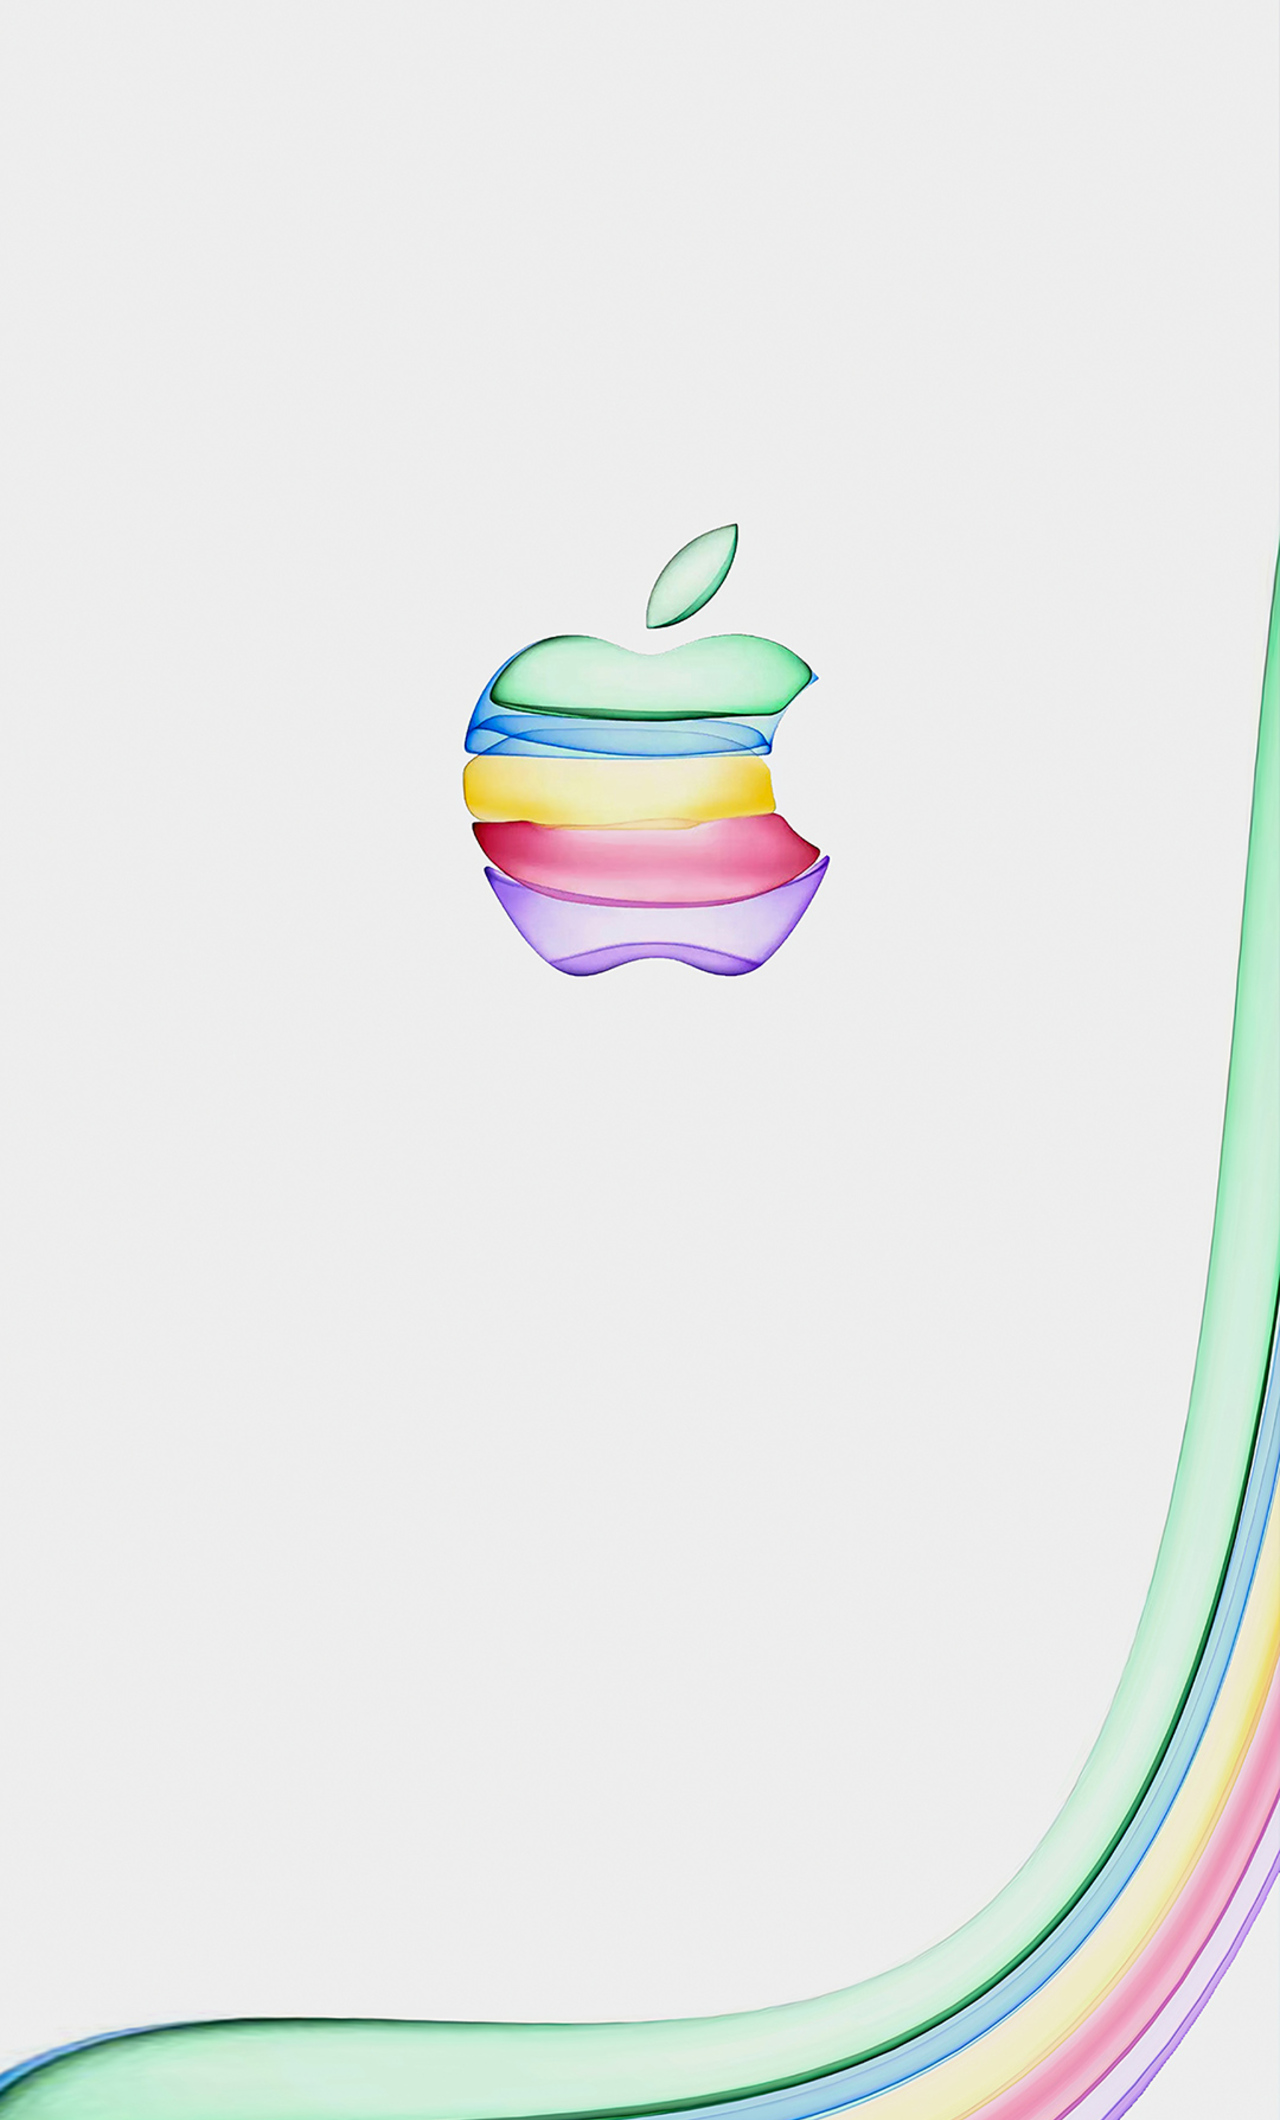 1280x2120 Apple New Colorful Logo 4k Iphone 6 Hd 4k